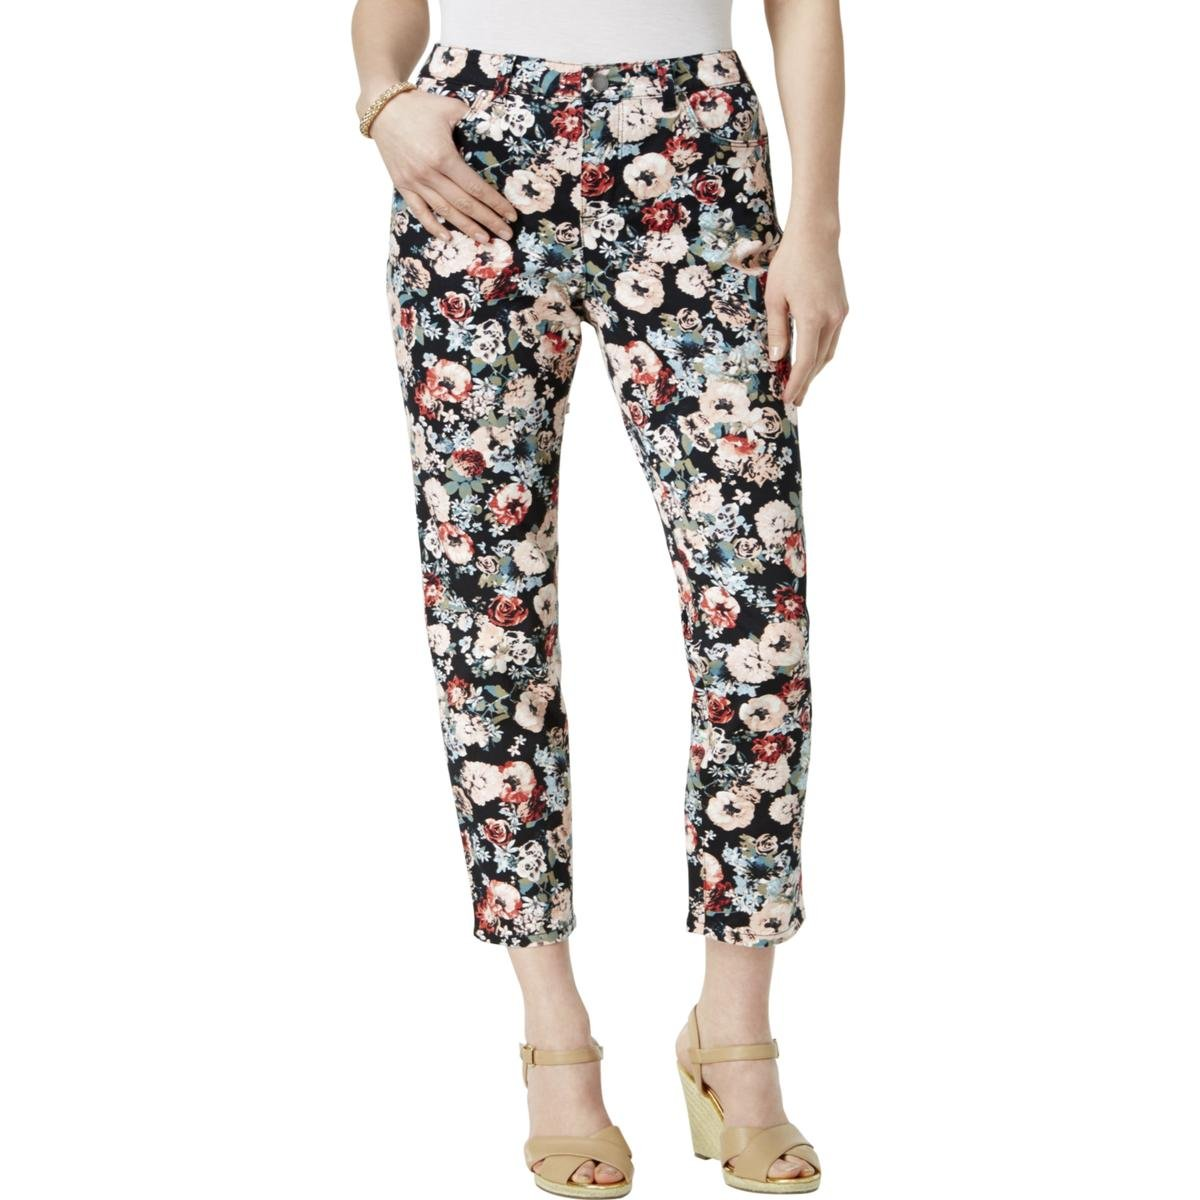 Charter Club Womens Bristol Floral Print Tummy Slimming Ankle Jeans Black 6